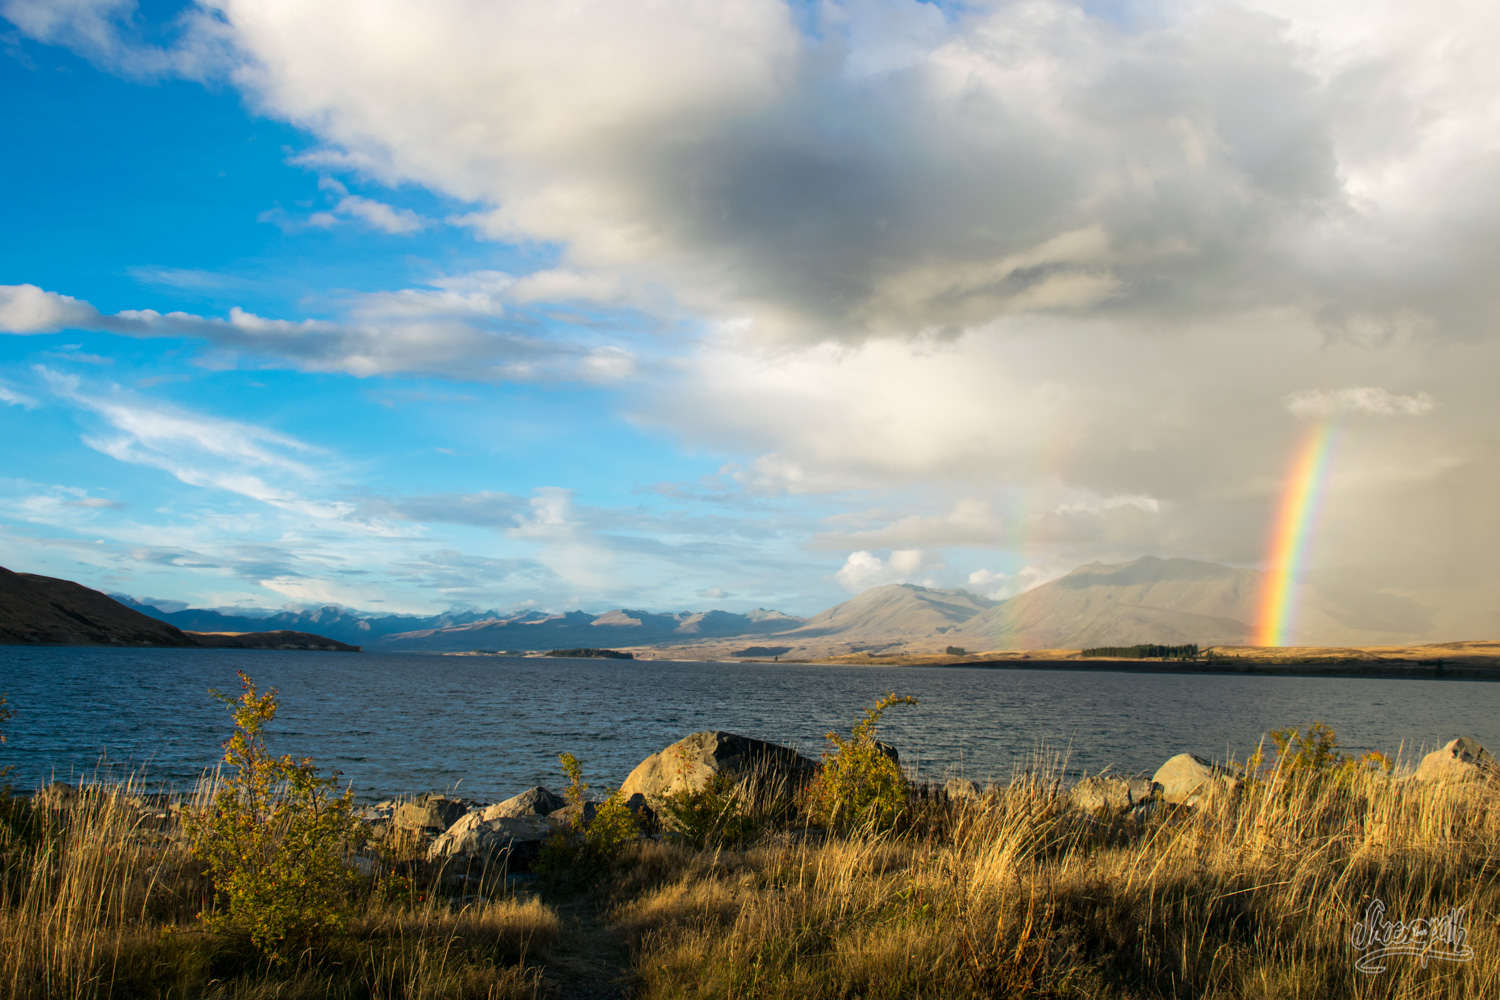 View on Lake Tekapo from our tente, just after a storm